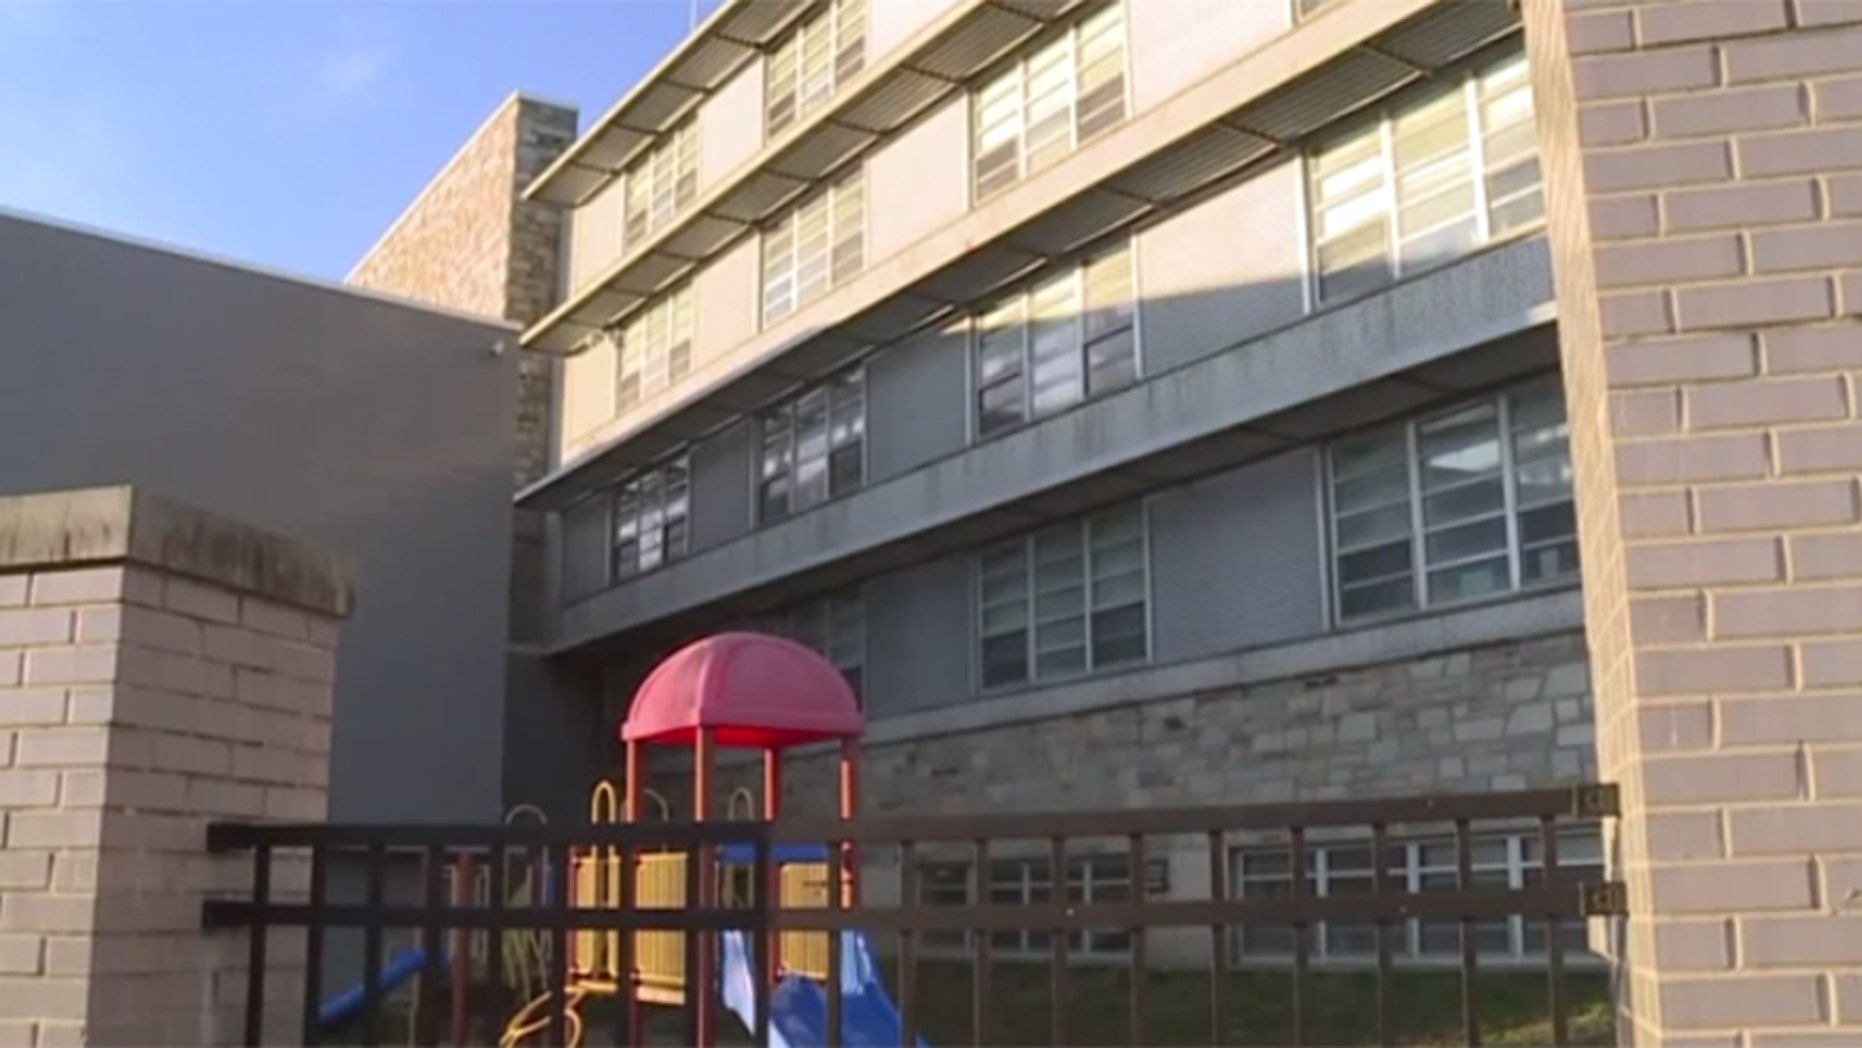 The Harrisburg Education Association says behavioral issues involving students at some schools in Pennsylvania's capital led to the resignations of 45 teachers during a four-month period this year.